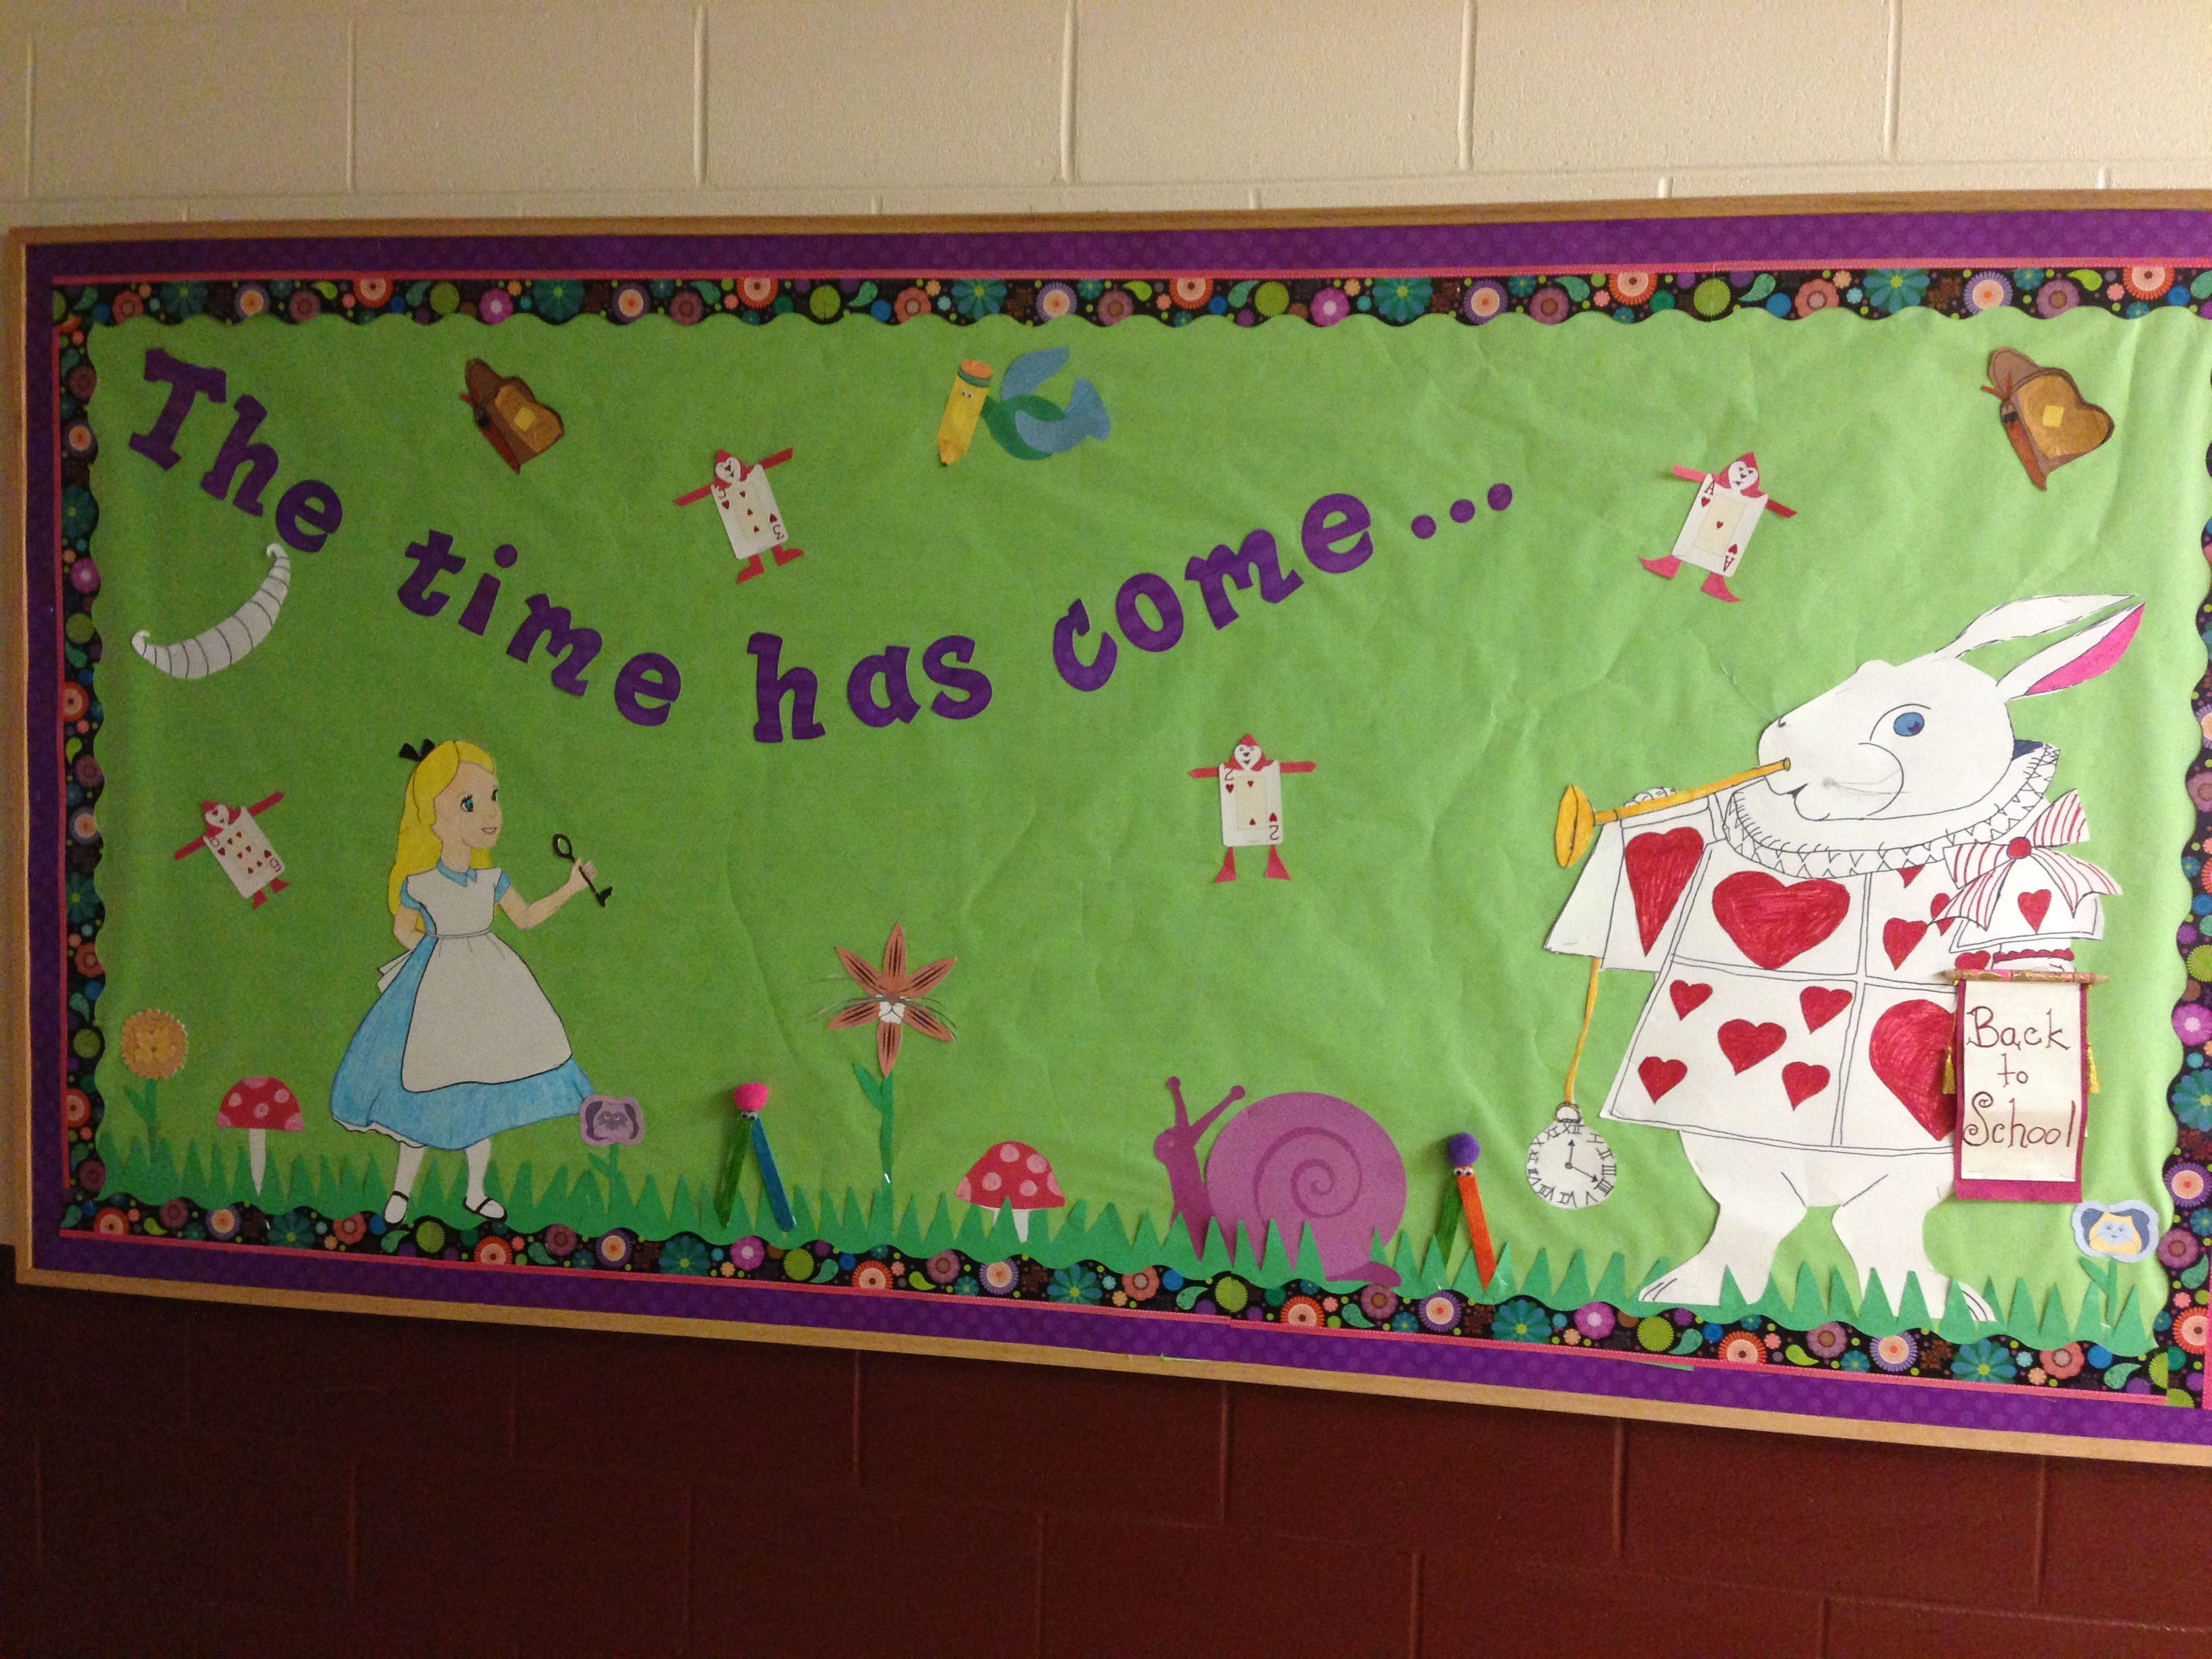 Alice In Wonderland Wall Decor Alice In Wonderland Wall Decorations Asb Decor That Weve Done